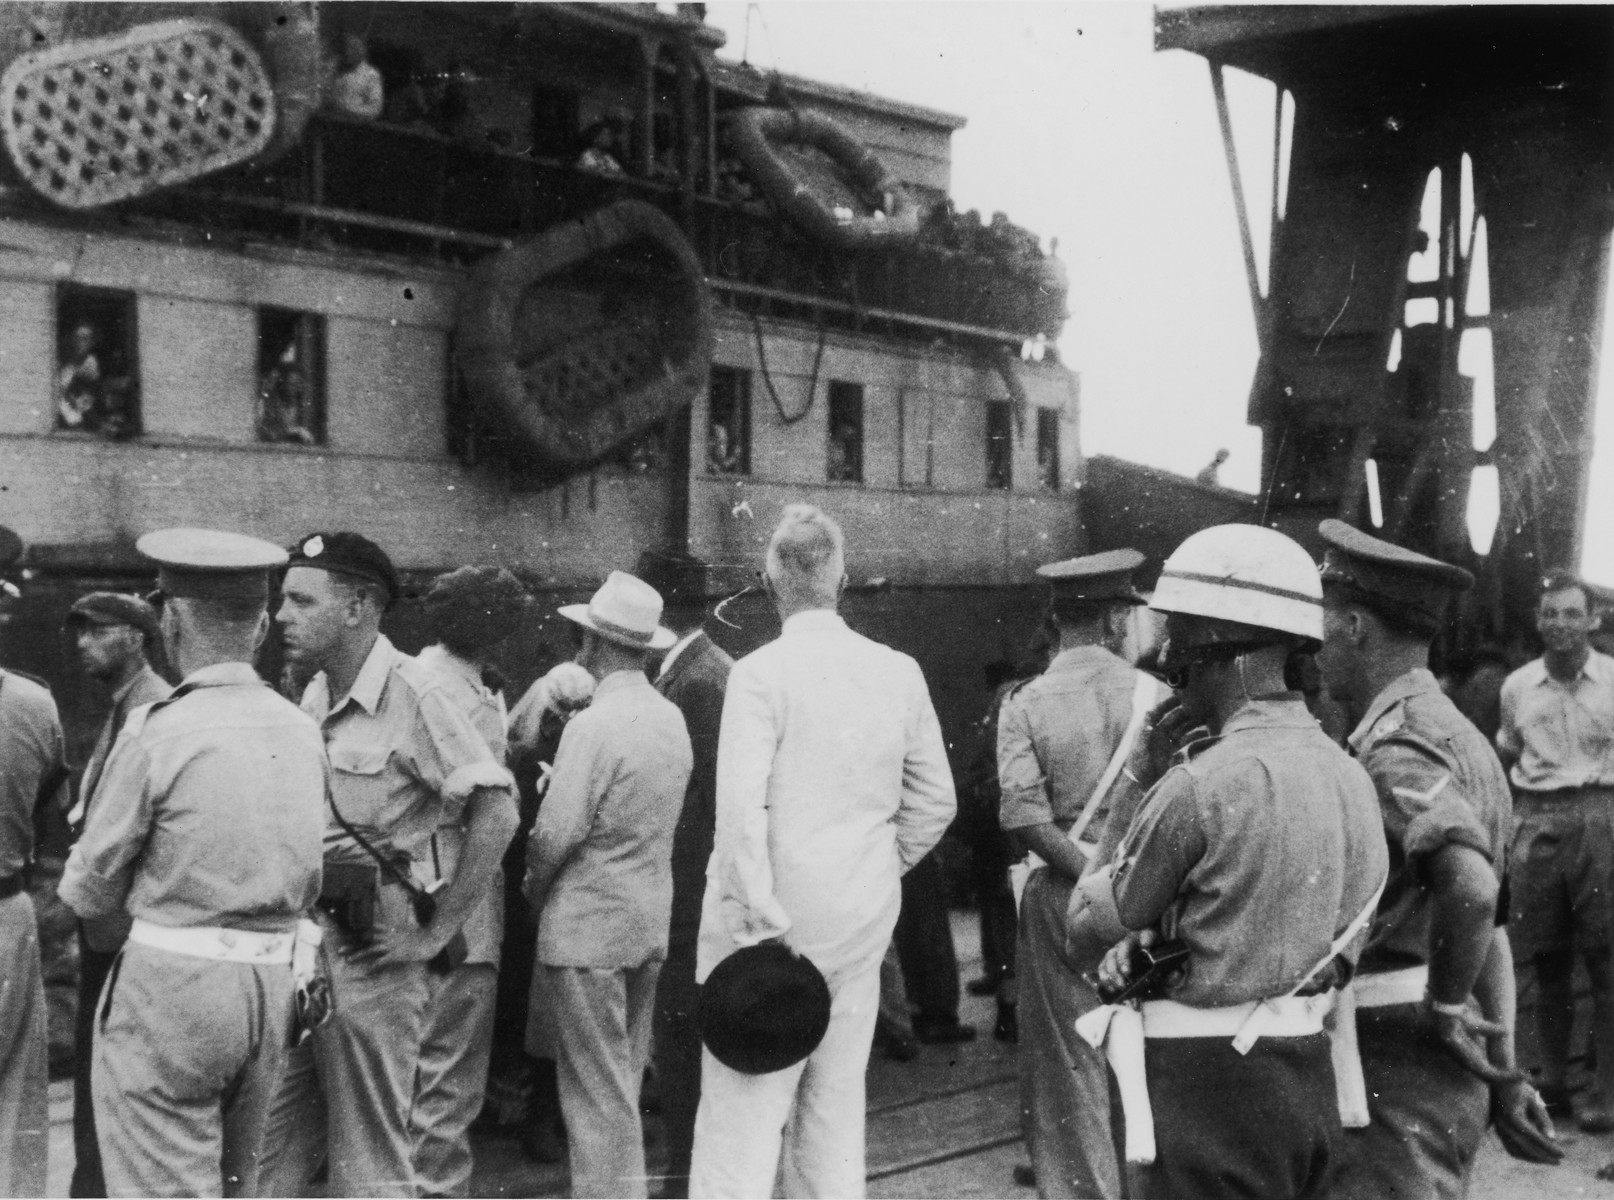 British soldiers on the pier in Haifa harbor oversee the offloading of passengers from the illegal immigrant ship, Exodus 1947, while a United Nations official (in the white suit) observes the process.